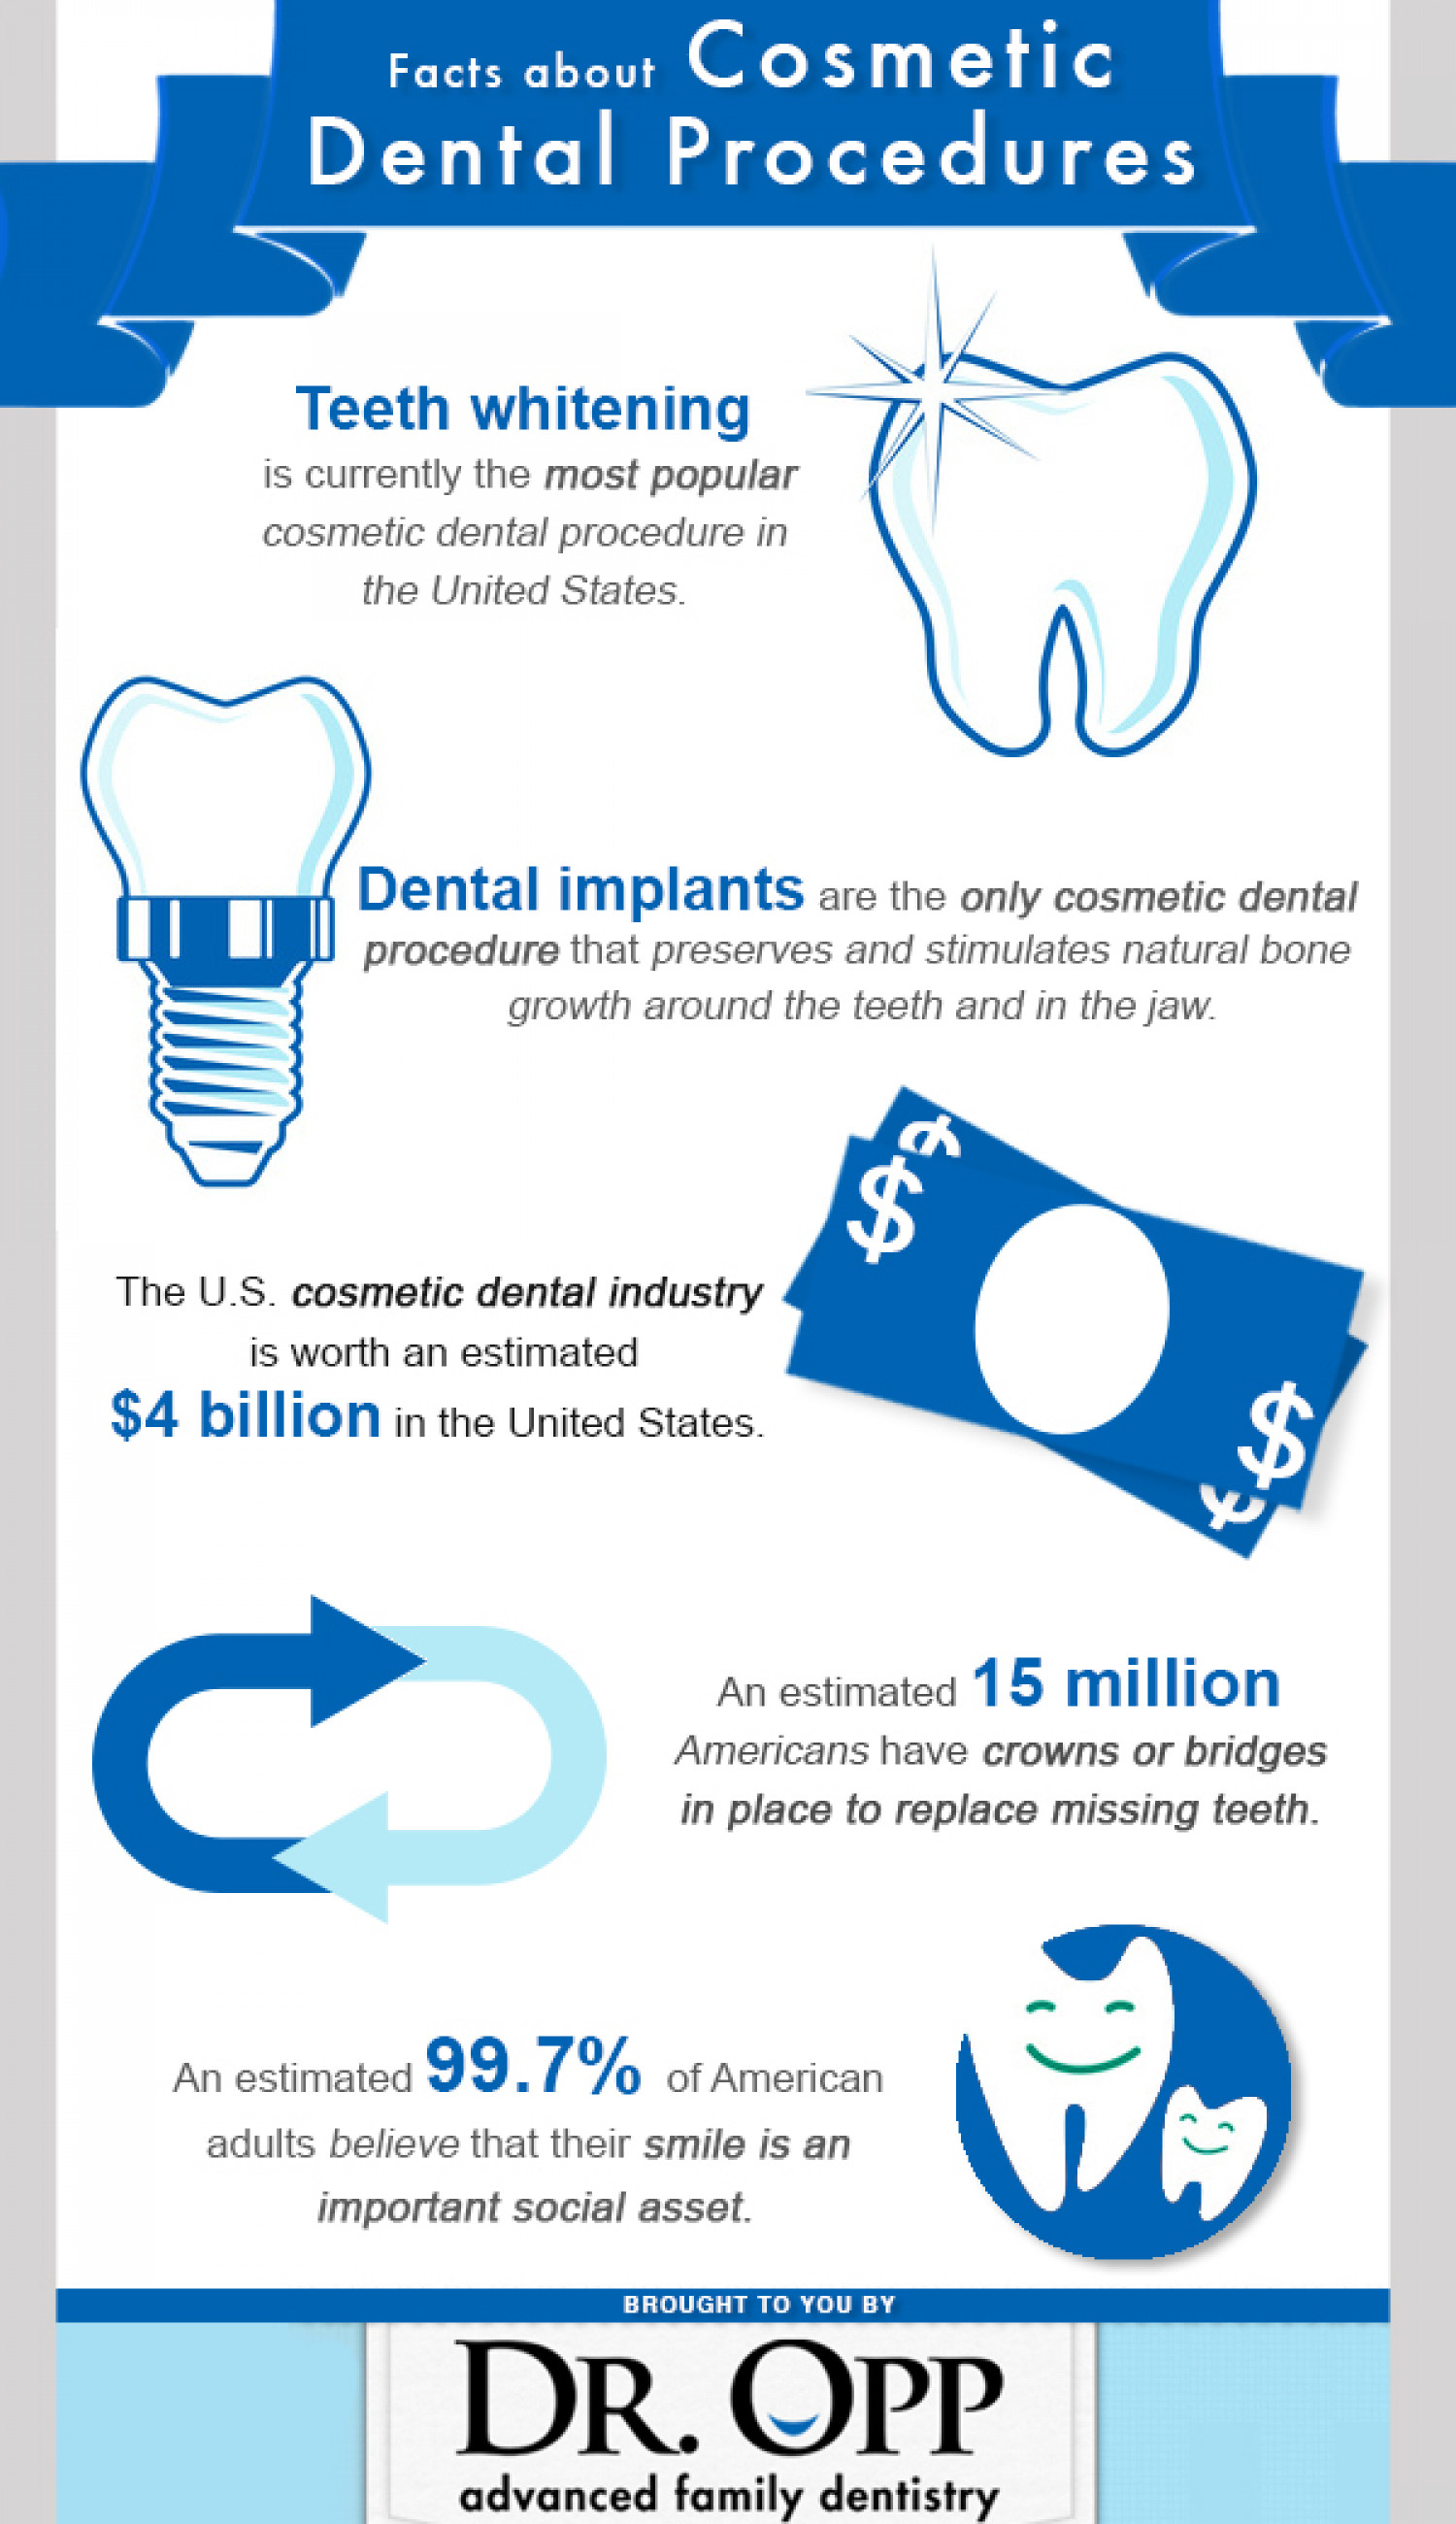 Facts about Cosmetic Dental Procedures Infographic